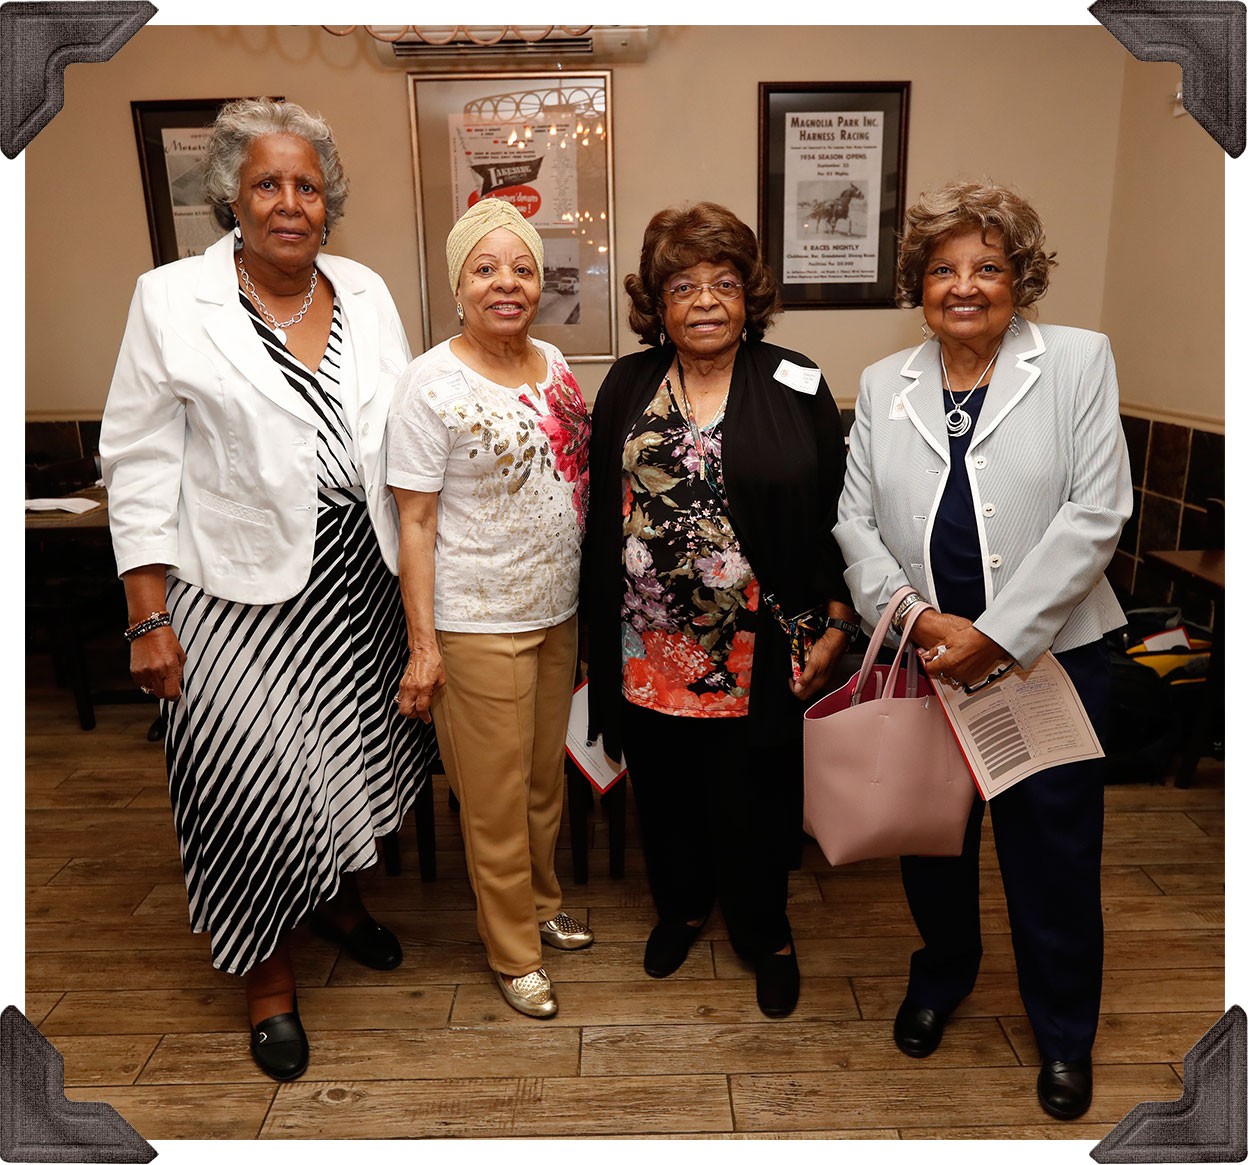 Class of '66 - Velda Roberts, Yolanda Henry, Dorothy Carter and Myralin LaCabe Vignaud